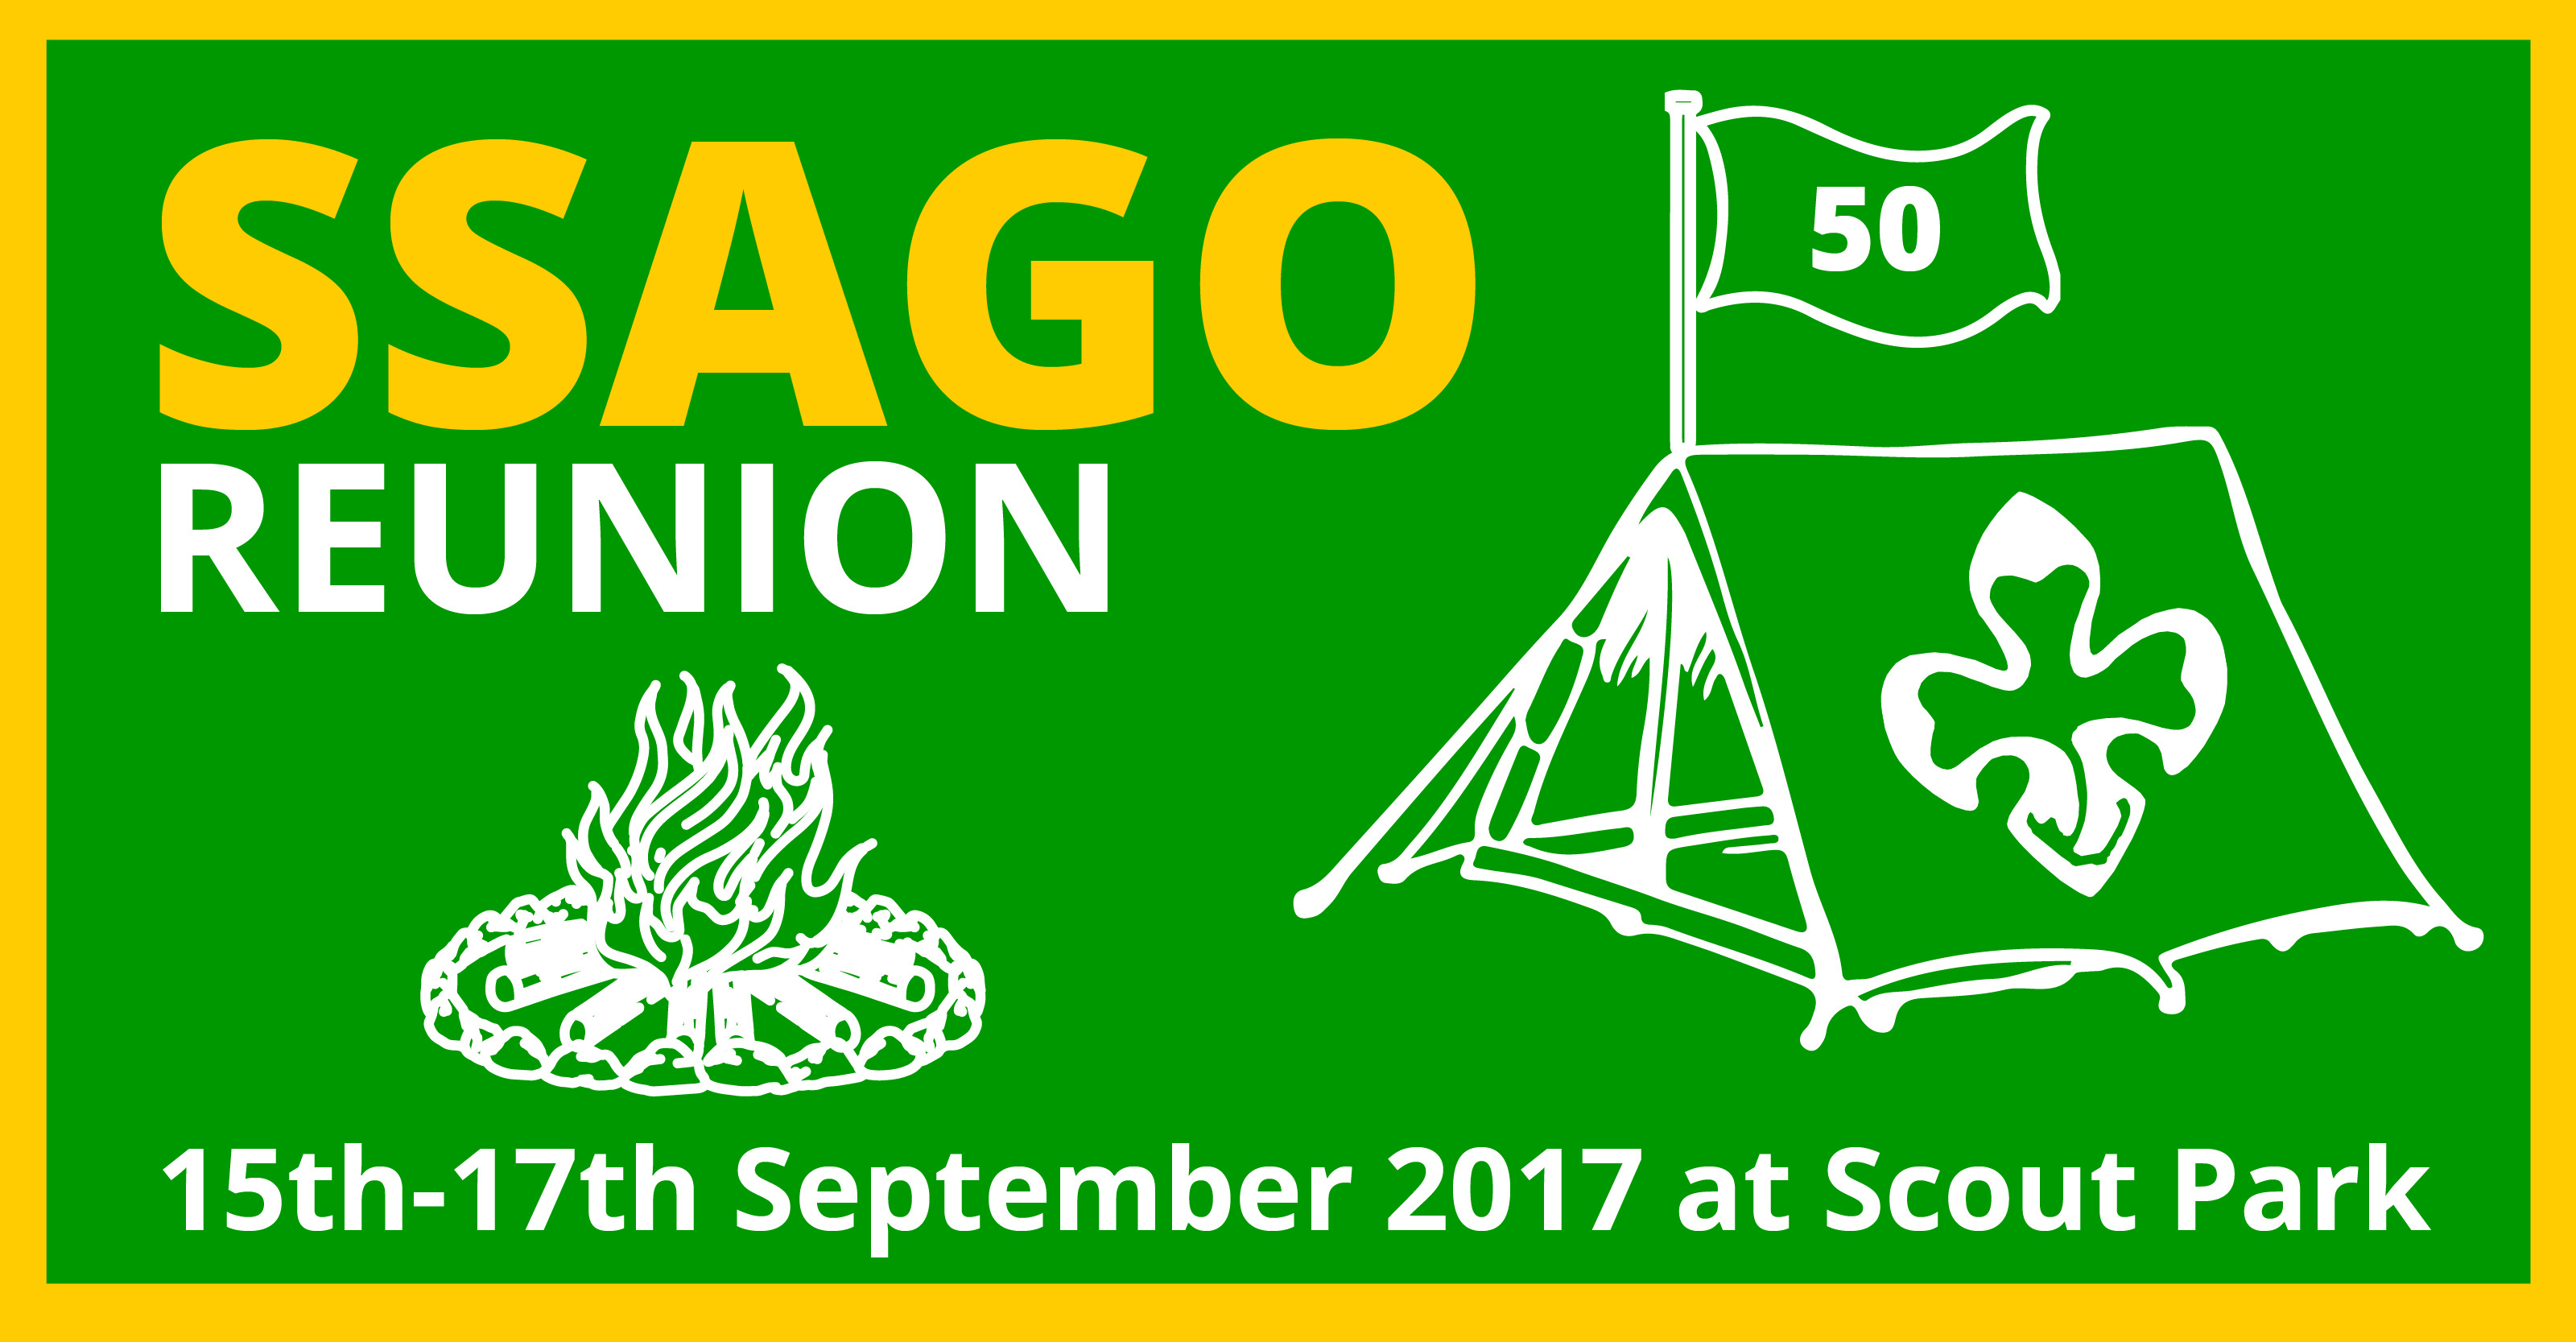 SSAGO Reunion and 50th Anniversary